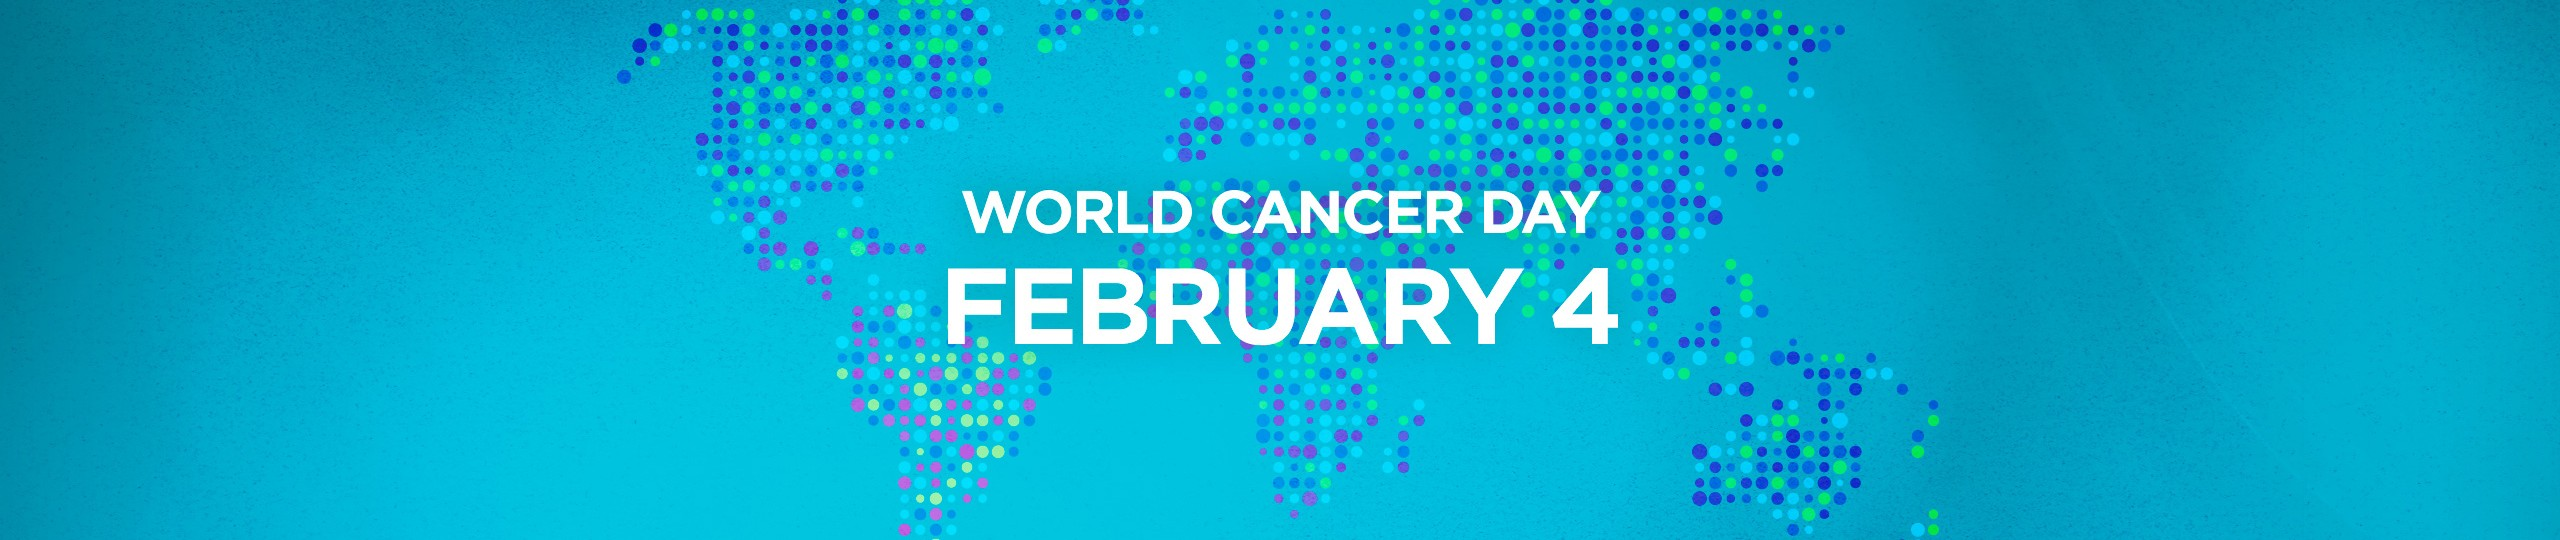 world cancer day banner